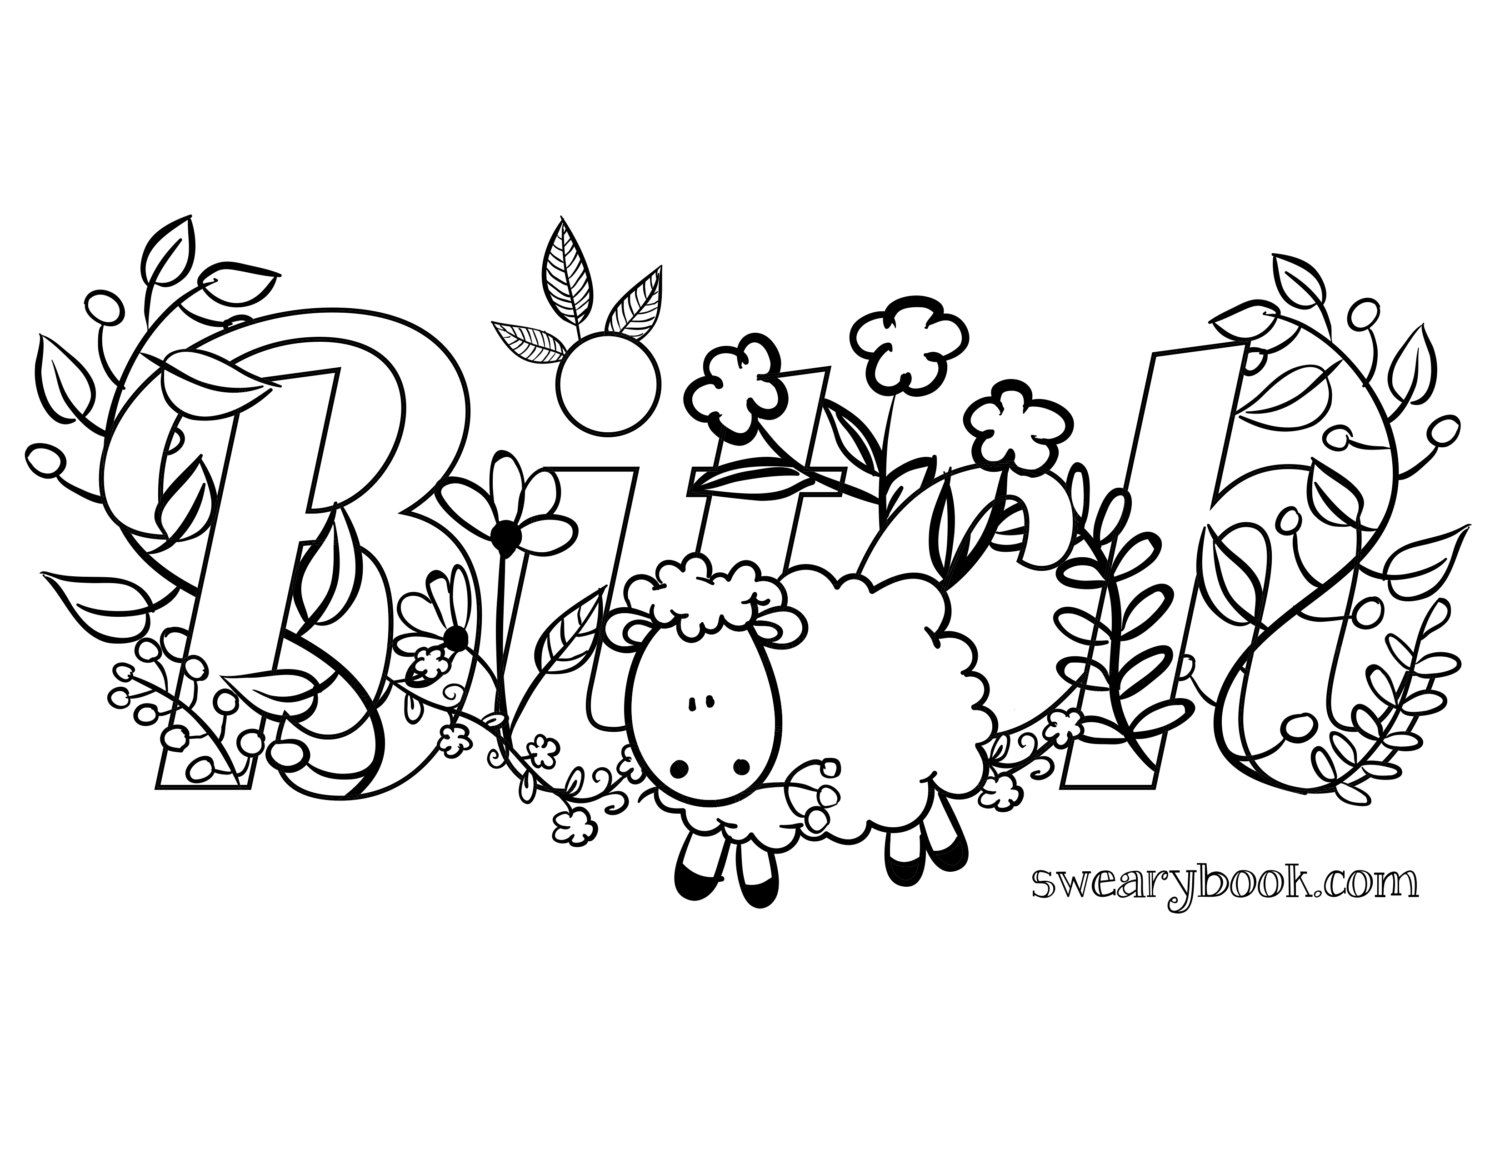 Swear word coloring book volume 1 - Swear Word Printable Adult Coloring Pages